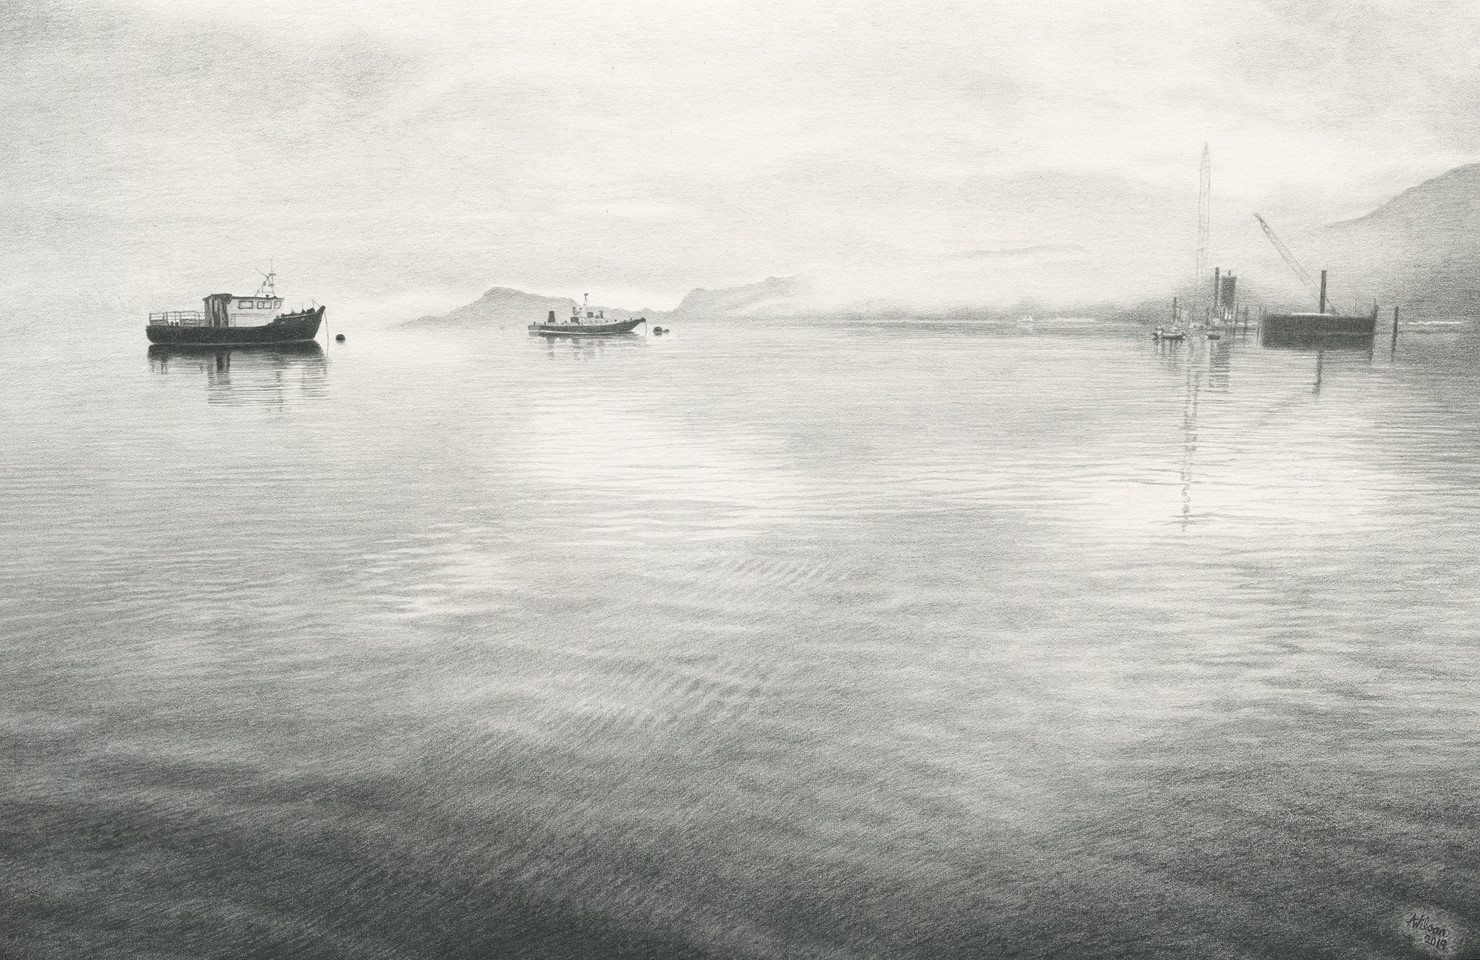 Boats in the Mist- Inverie Bay